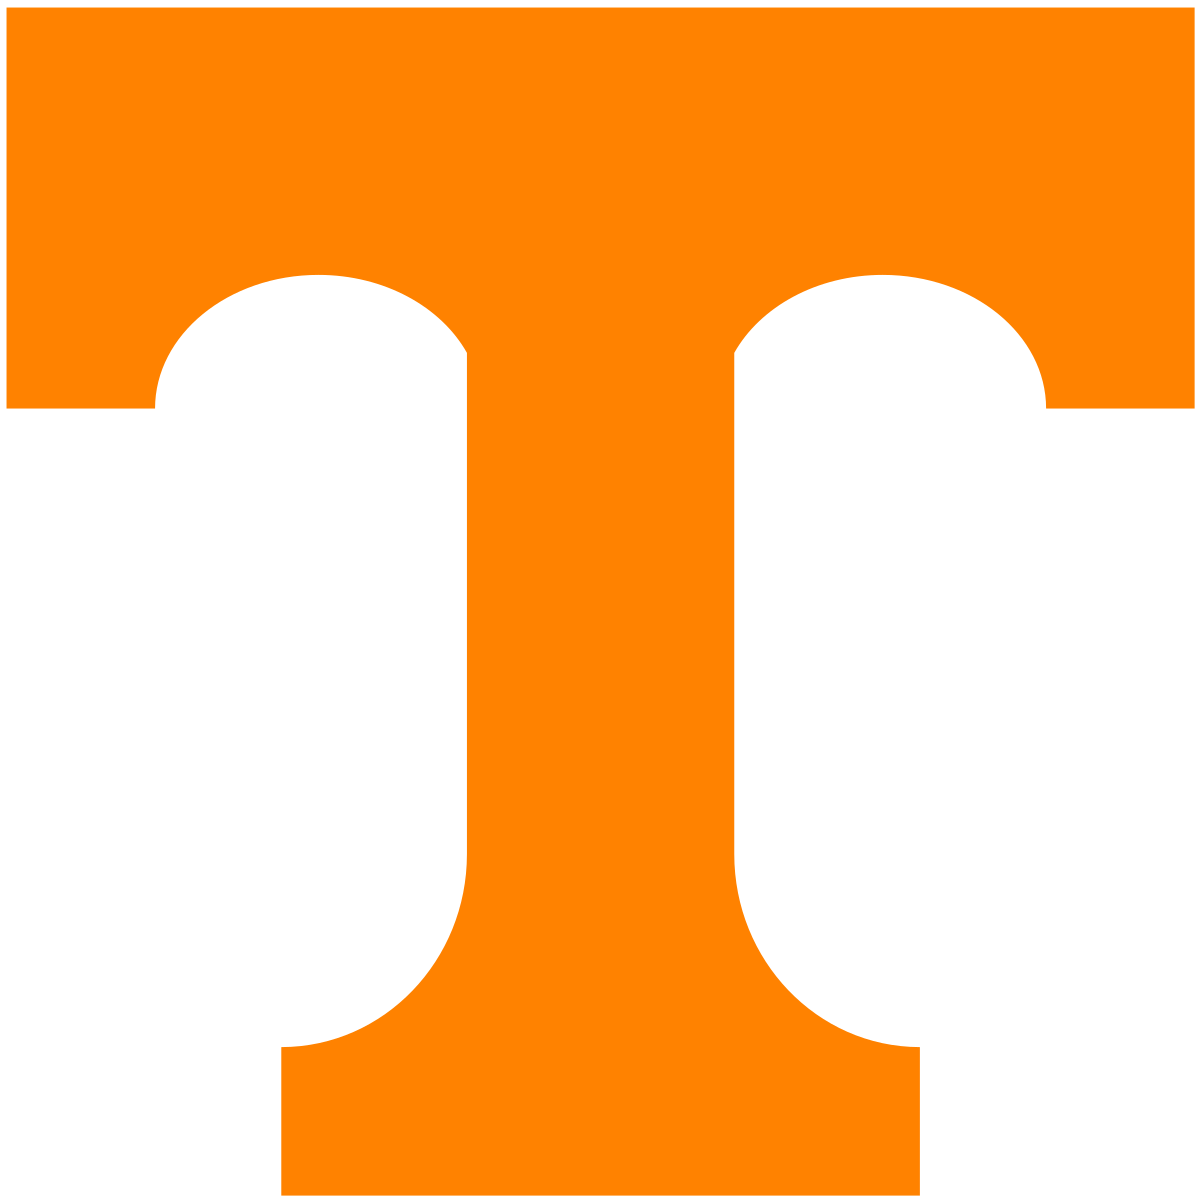 Tennessee volunteers wikipedia . Volunteering clipart public meeting